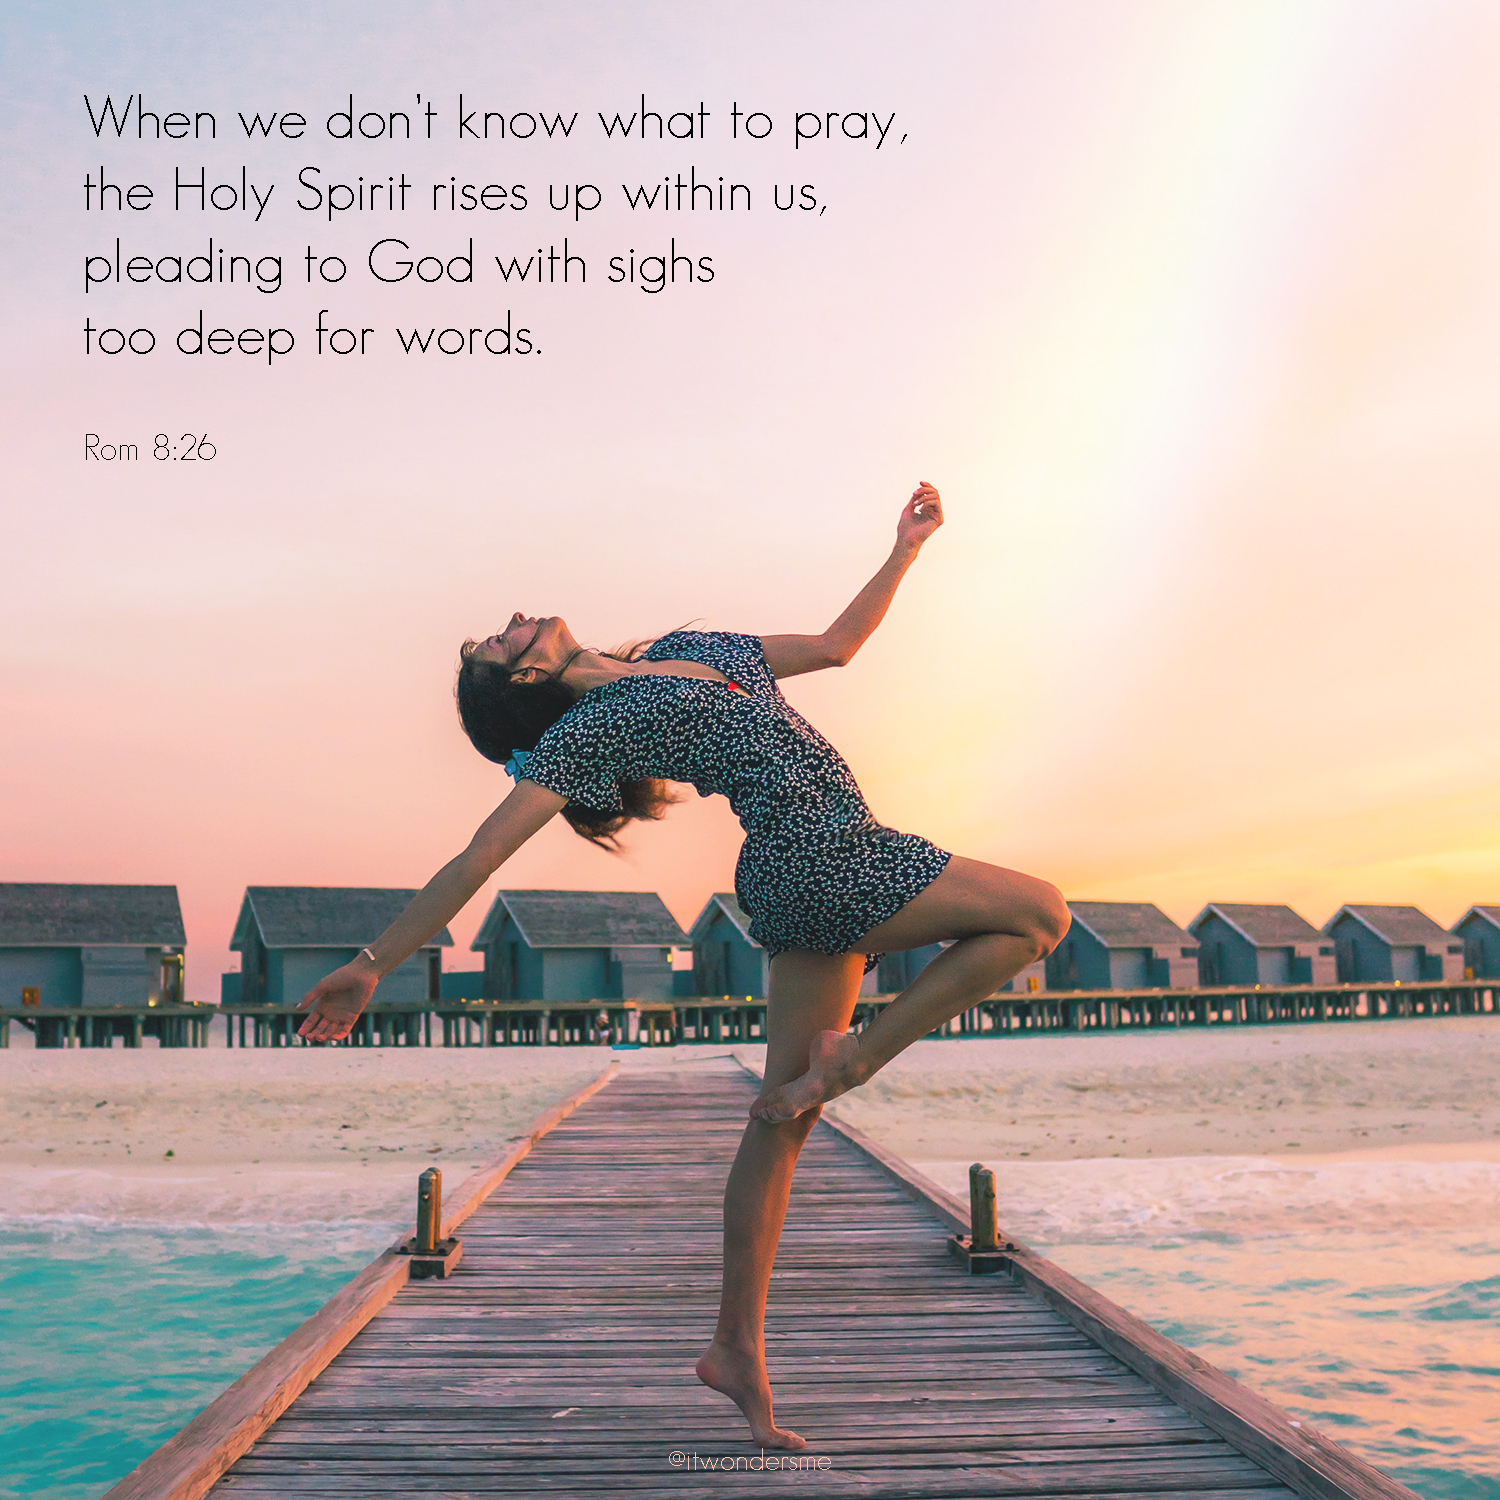 When we don't know what to pray, the Holy Spirit rises up in us.